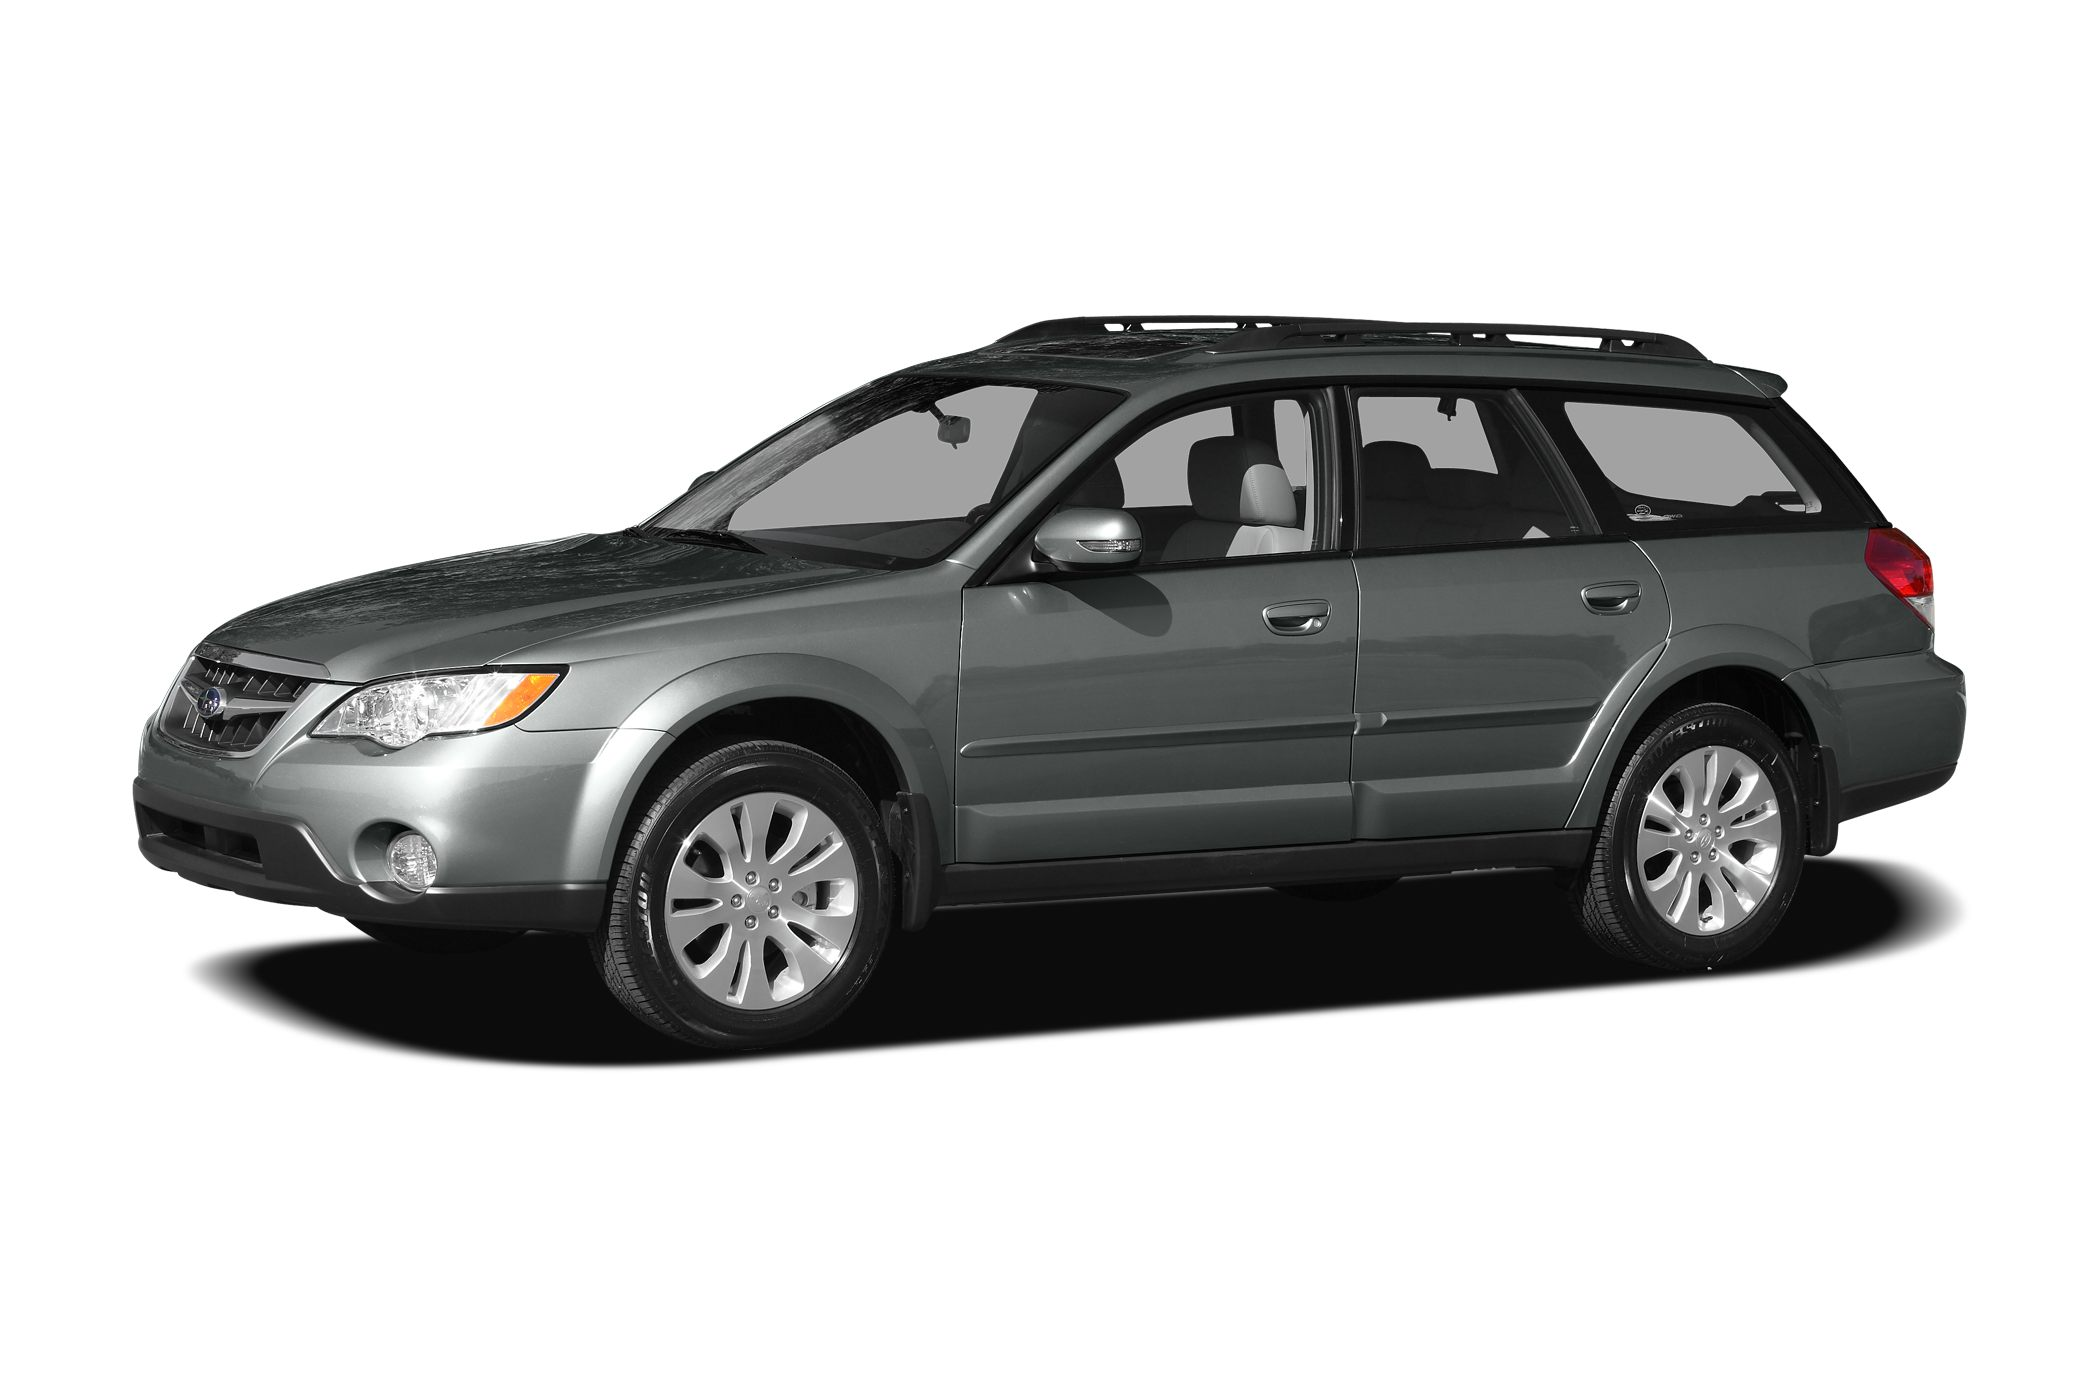 2008 Subaru Outback 30R LL Bean Edition Superb Condition GREAT MILES 67517 Sunroof Heated Le